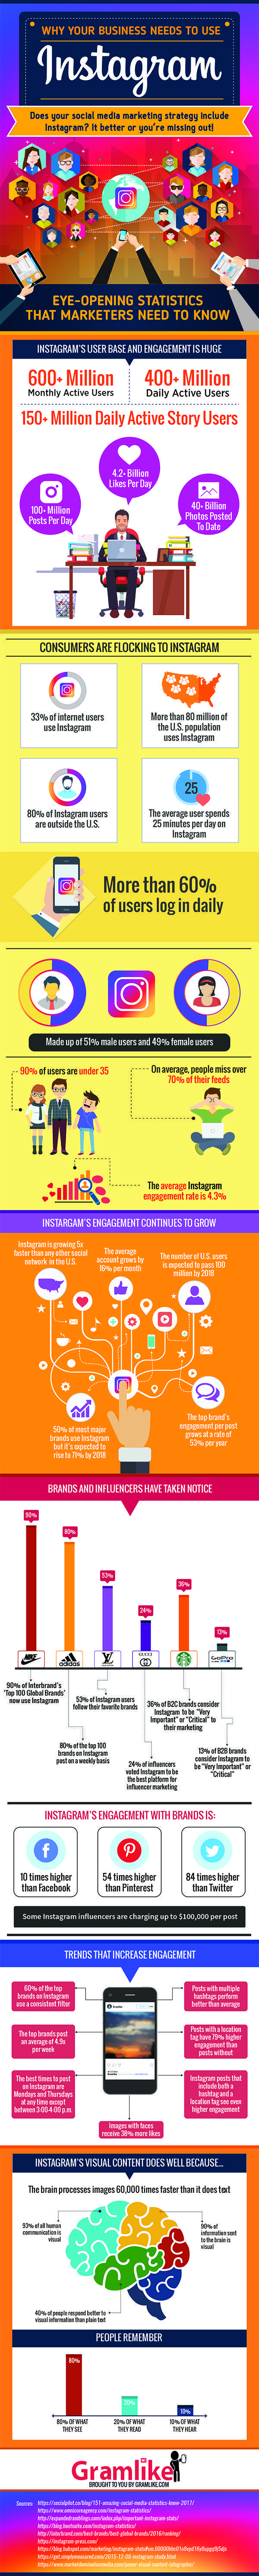 Why Your Business Needs to Use Instagram in 2017 [Infographic] - high engagement rates, range of audience, influencers strategy